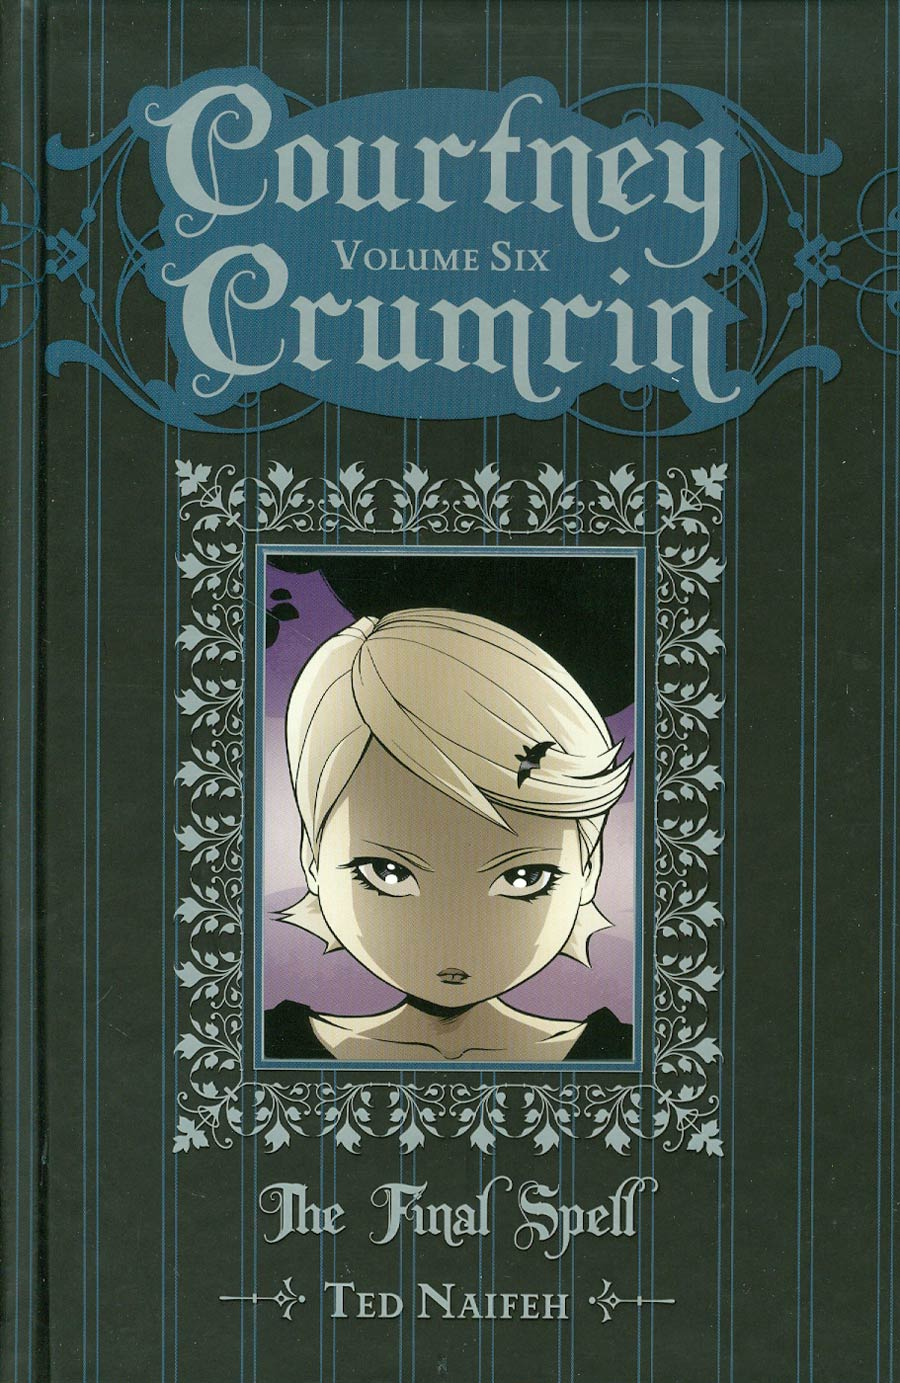 Courtney Crumrin Vol 6 Final Spell HC Special Edition